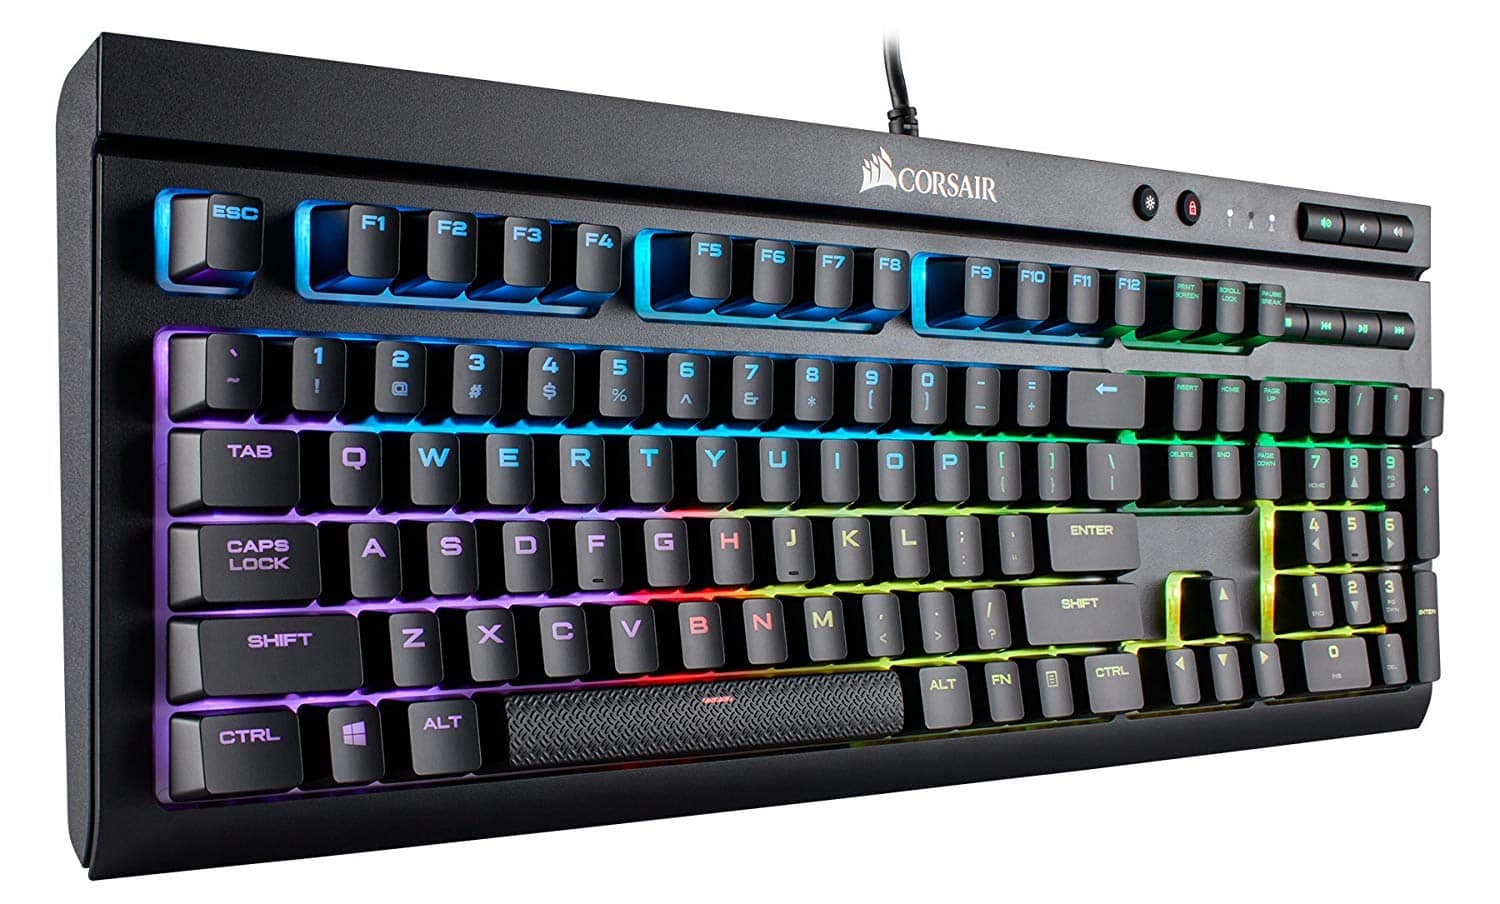 4f0571d7961 Corsair K68 RGB LED Backlit Mechanical Gaming Keyboard IP32 Certified,  Linear & Quiet - Cherry MX Red $79.99 - Slickdeals.net